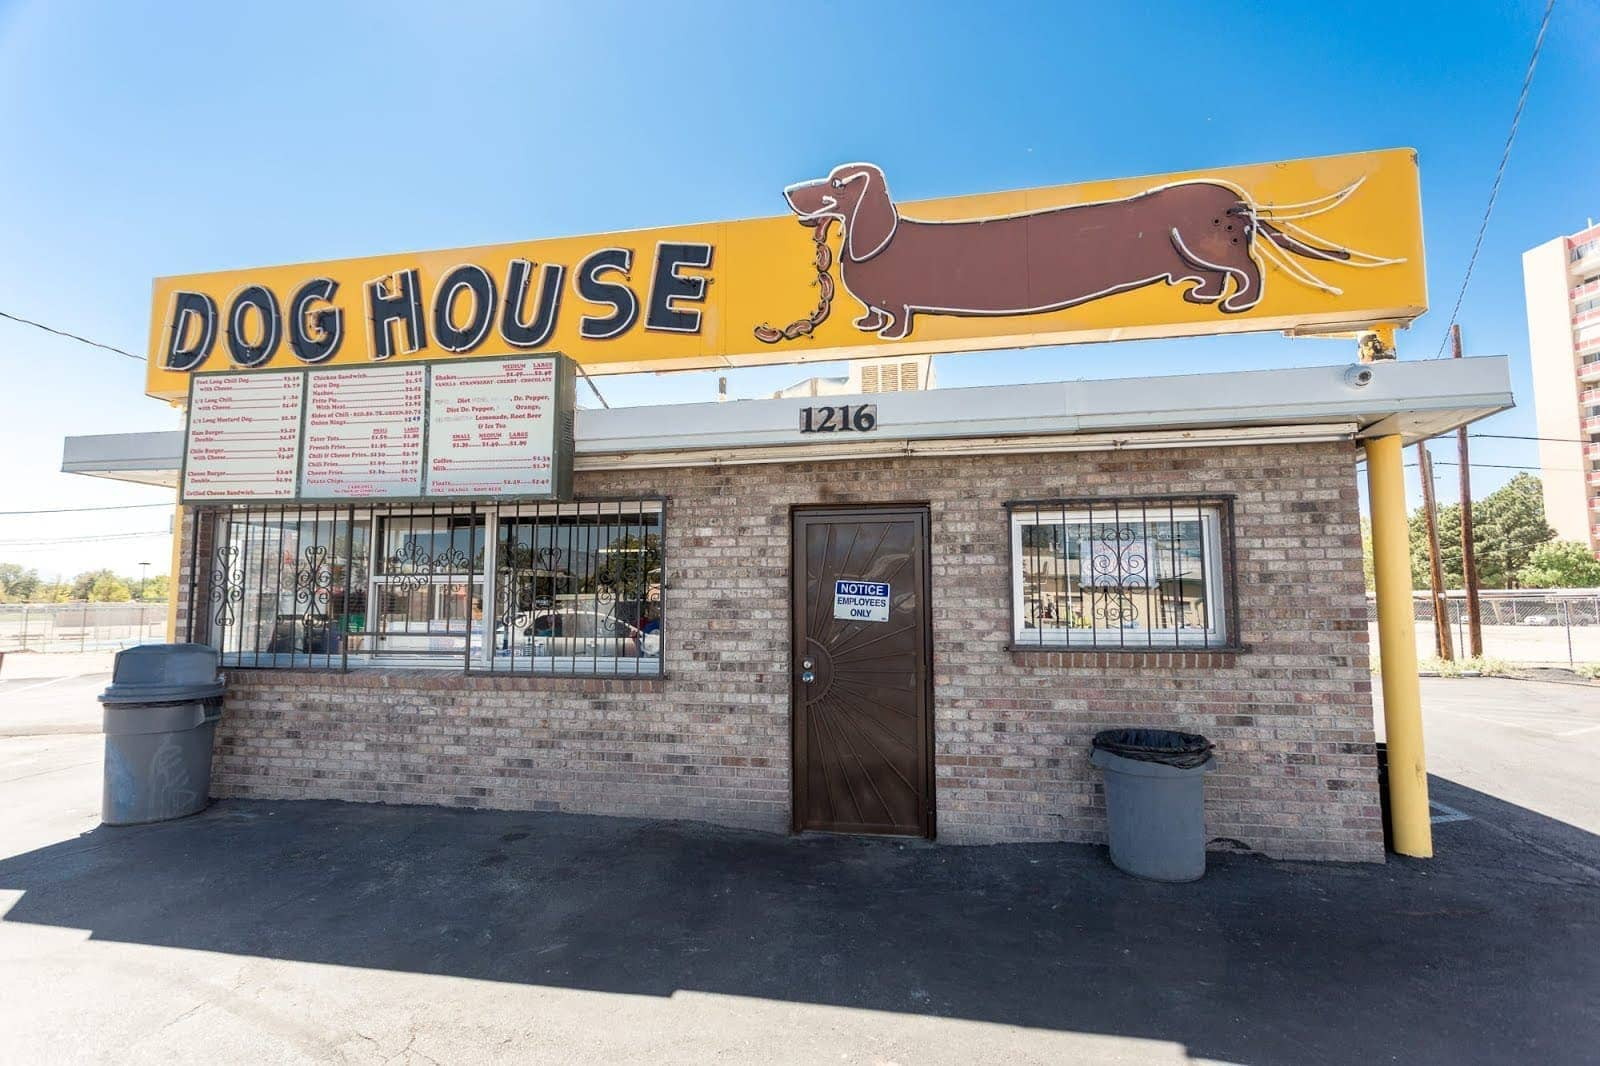 Route 66 Dog House Diner Albuquerque by Laurence Norah